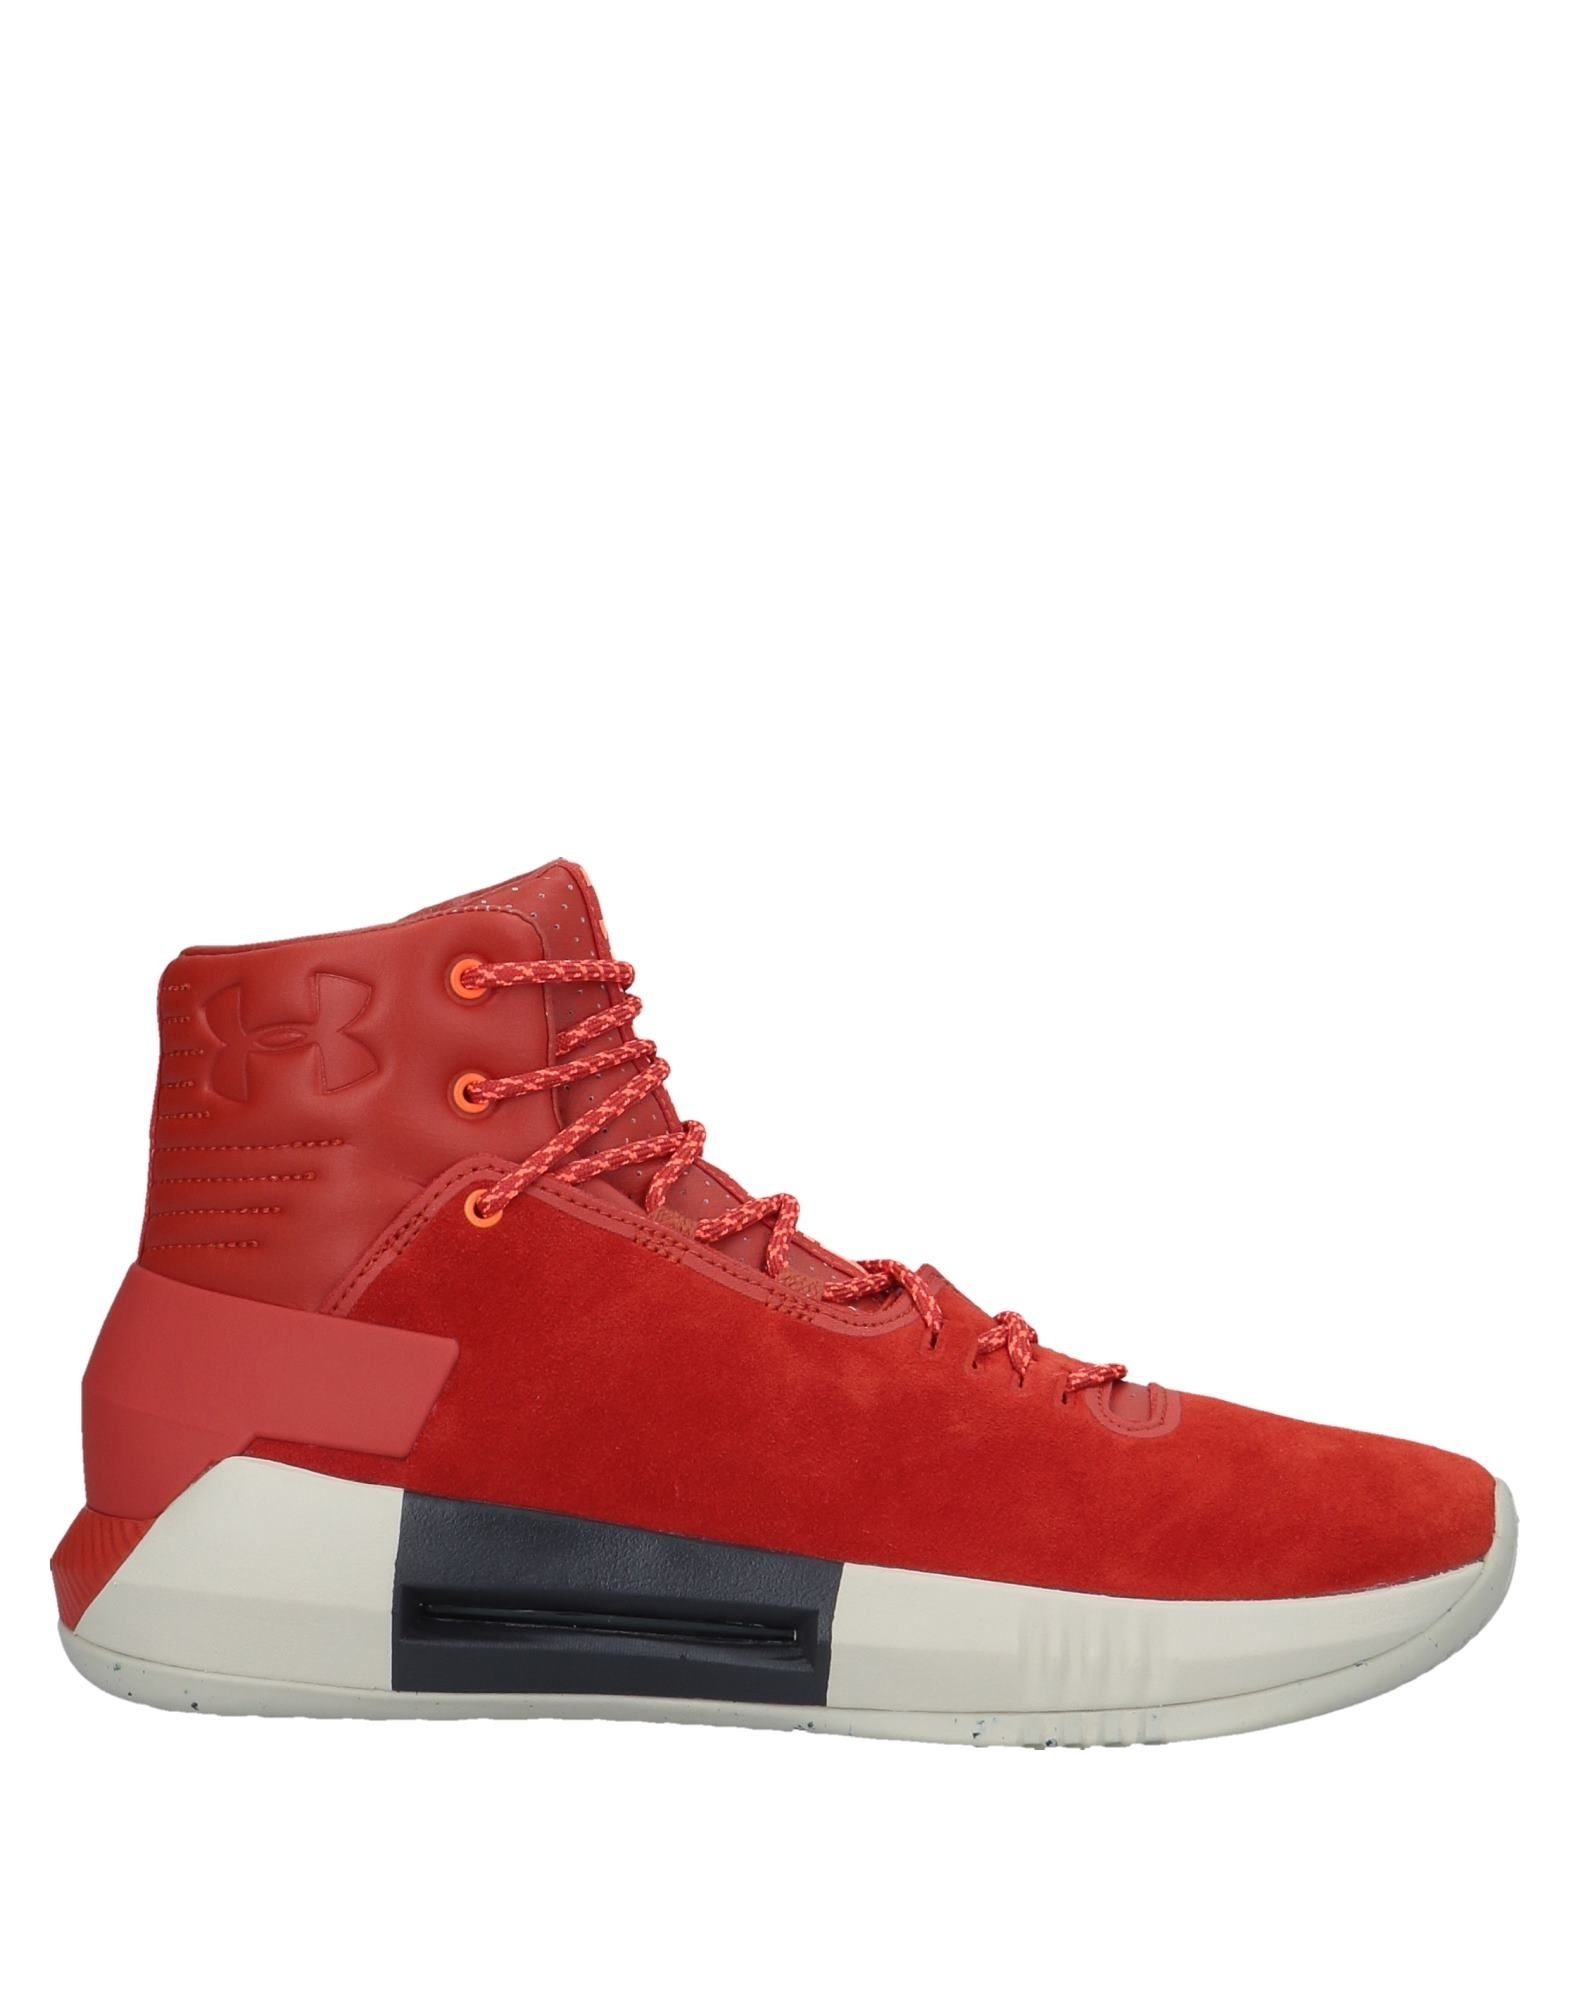 Under Armour Sneakers - Men Under Armour Sneakers - online on  Canada - Sneakers 11540769CH 62d634